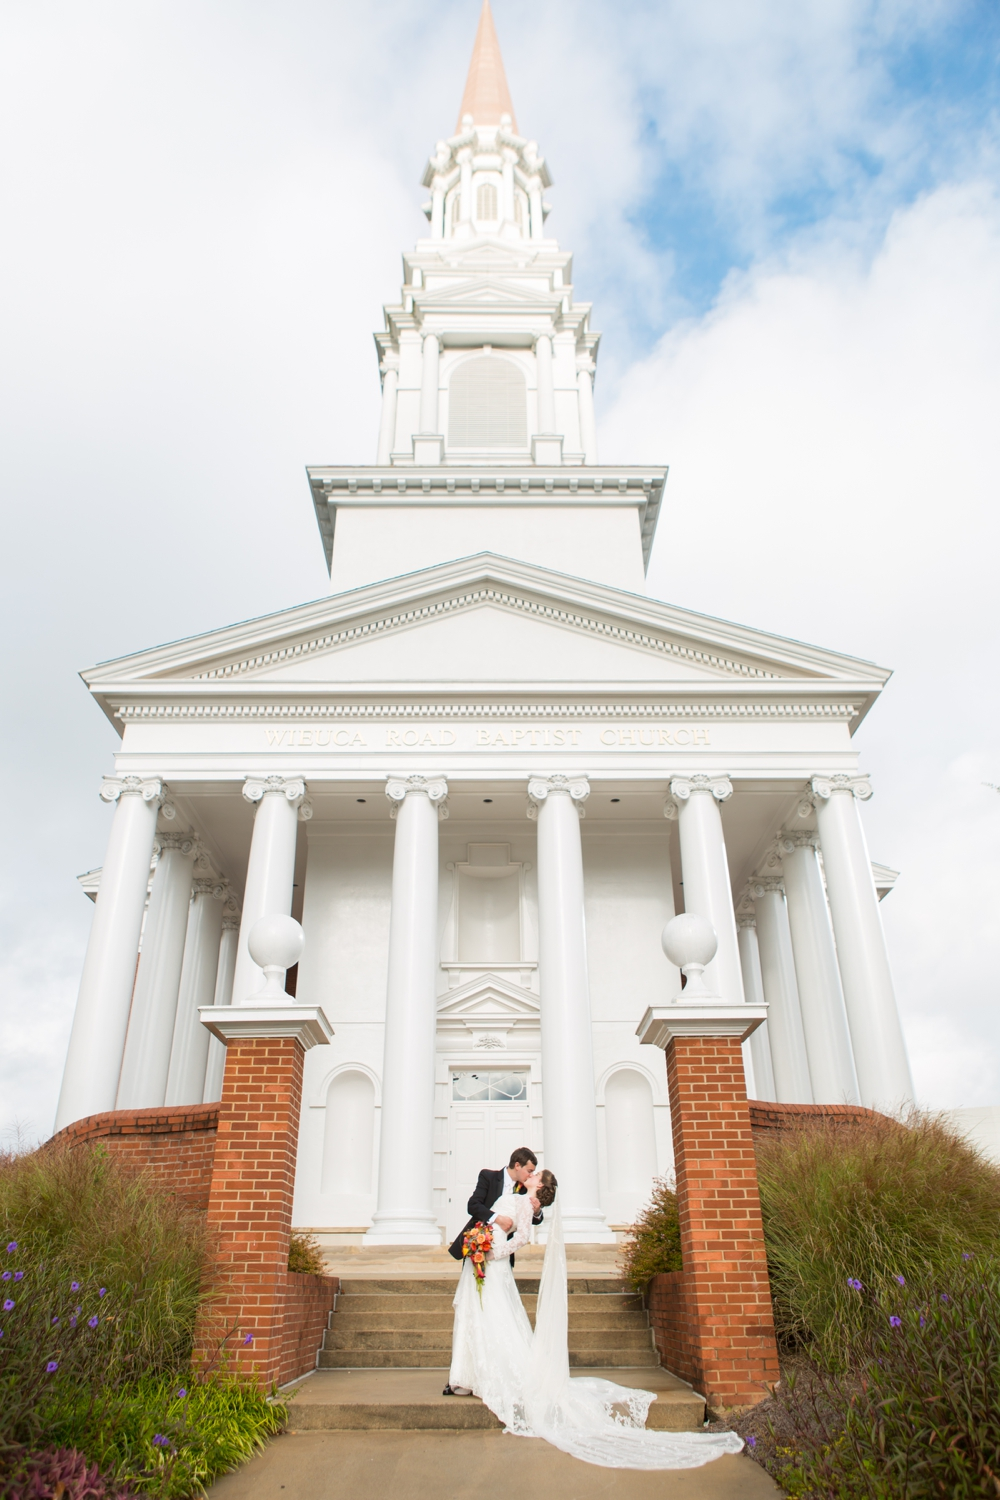 Wieuca-Road-Baptist-Church-Wedding-Photos044